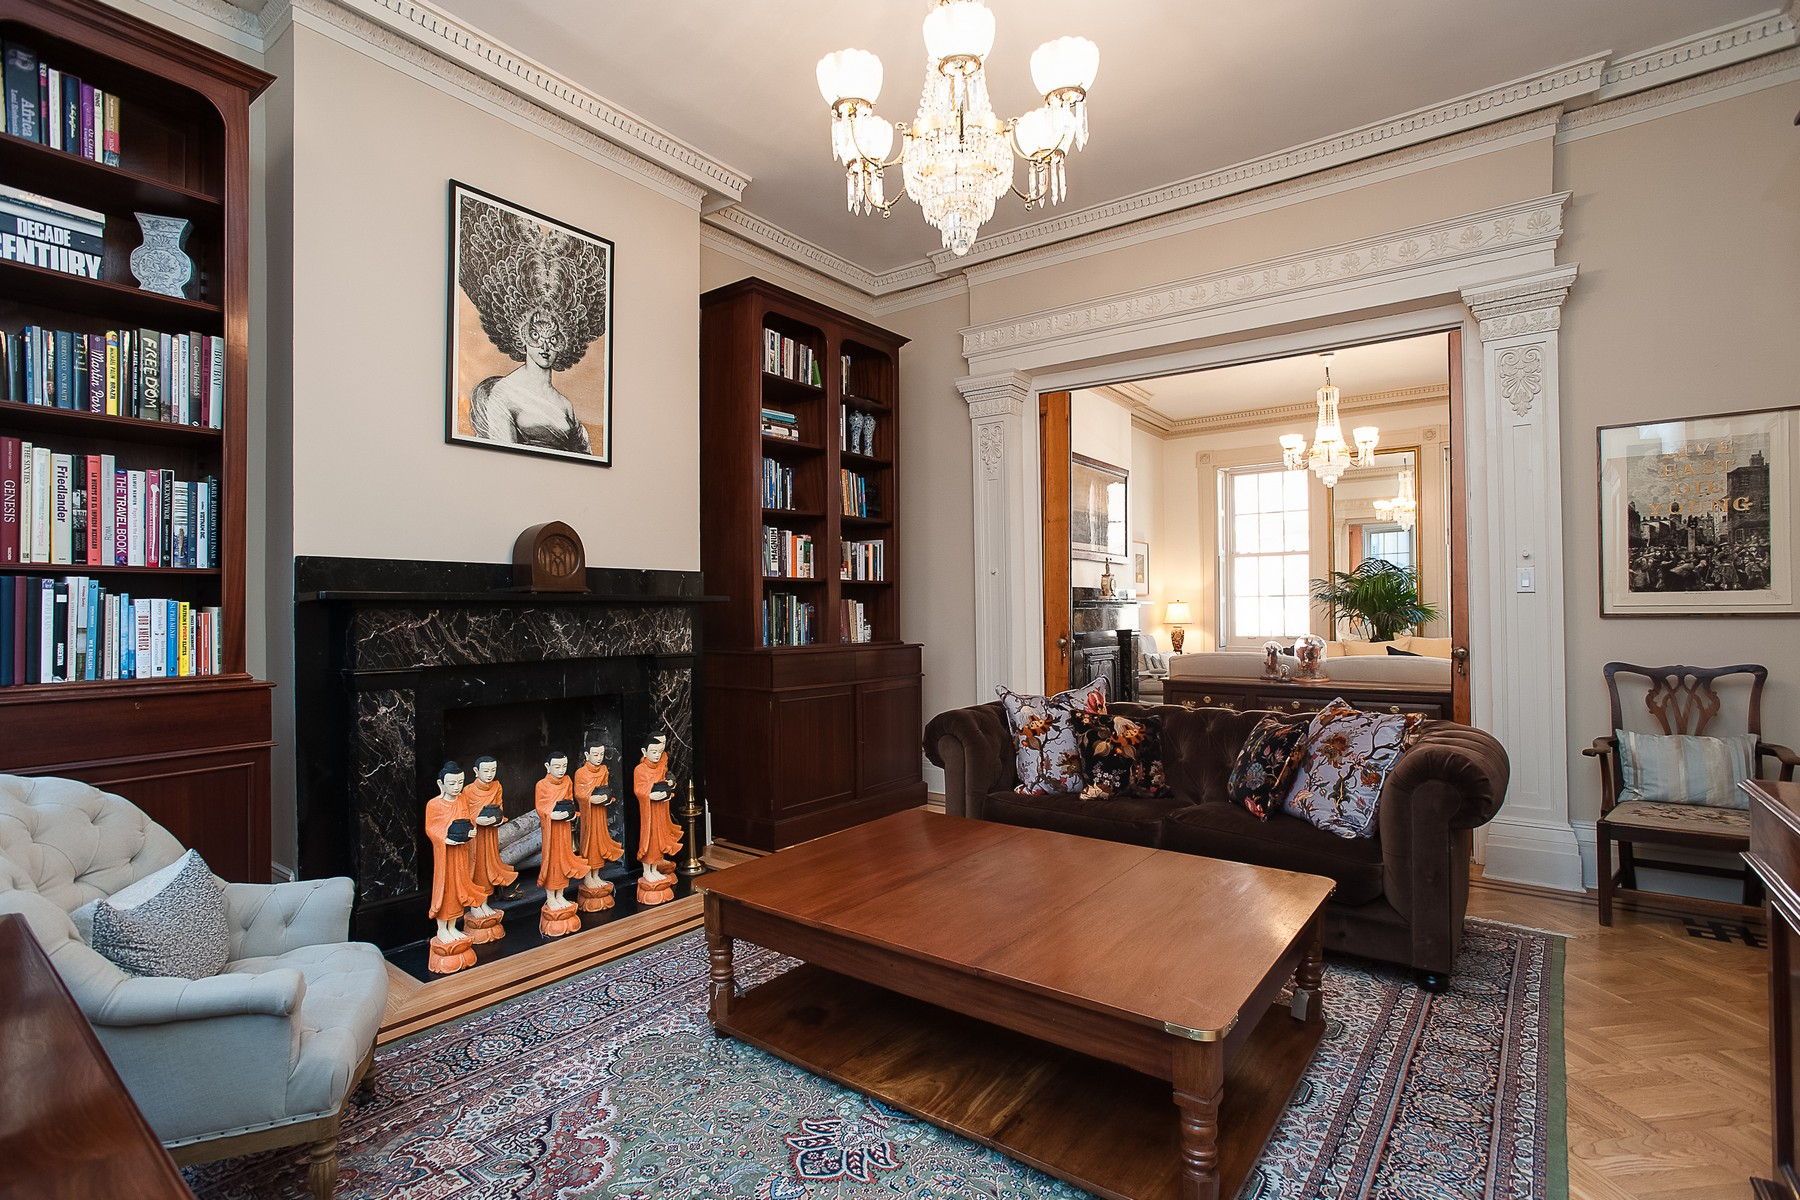 联栋屋 为 销售 在 Historic 1837 Paulus Hook Greek Revival Townhouse 103 Grand Street 泽西城, 07302 美国